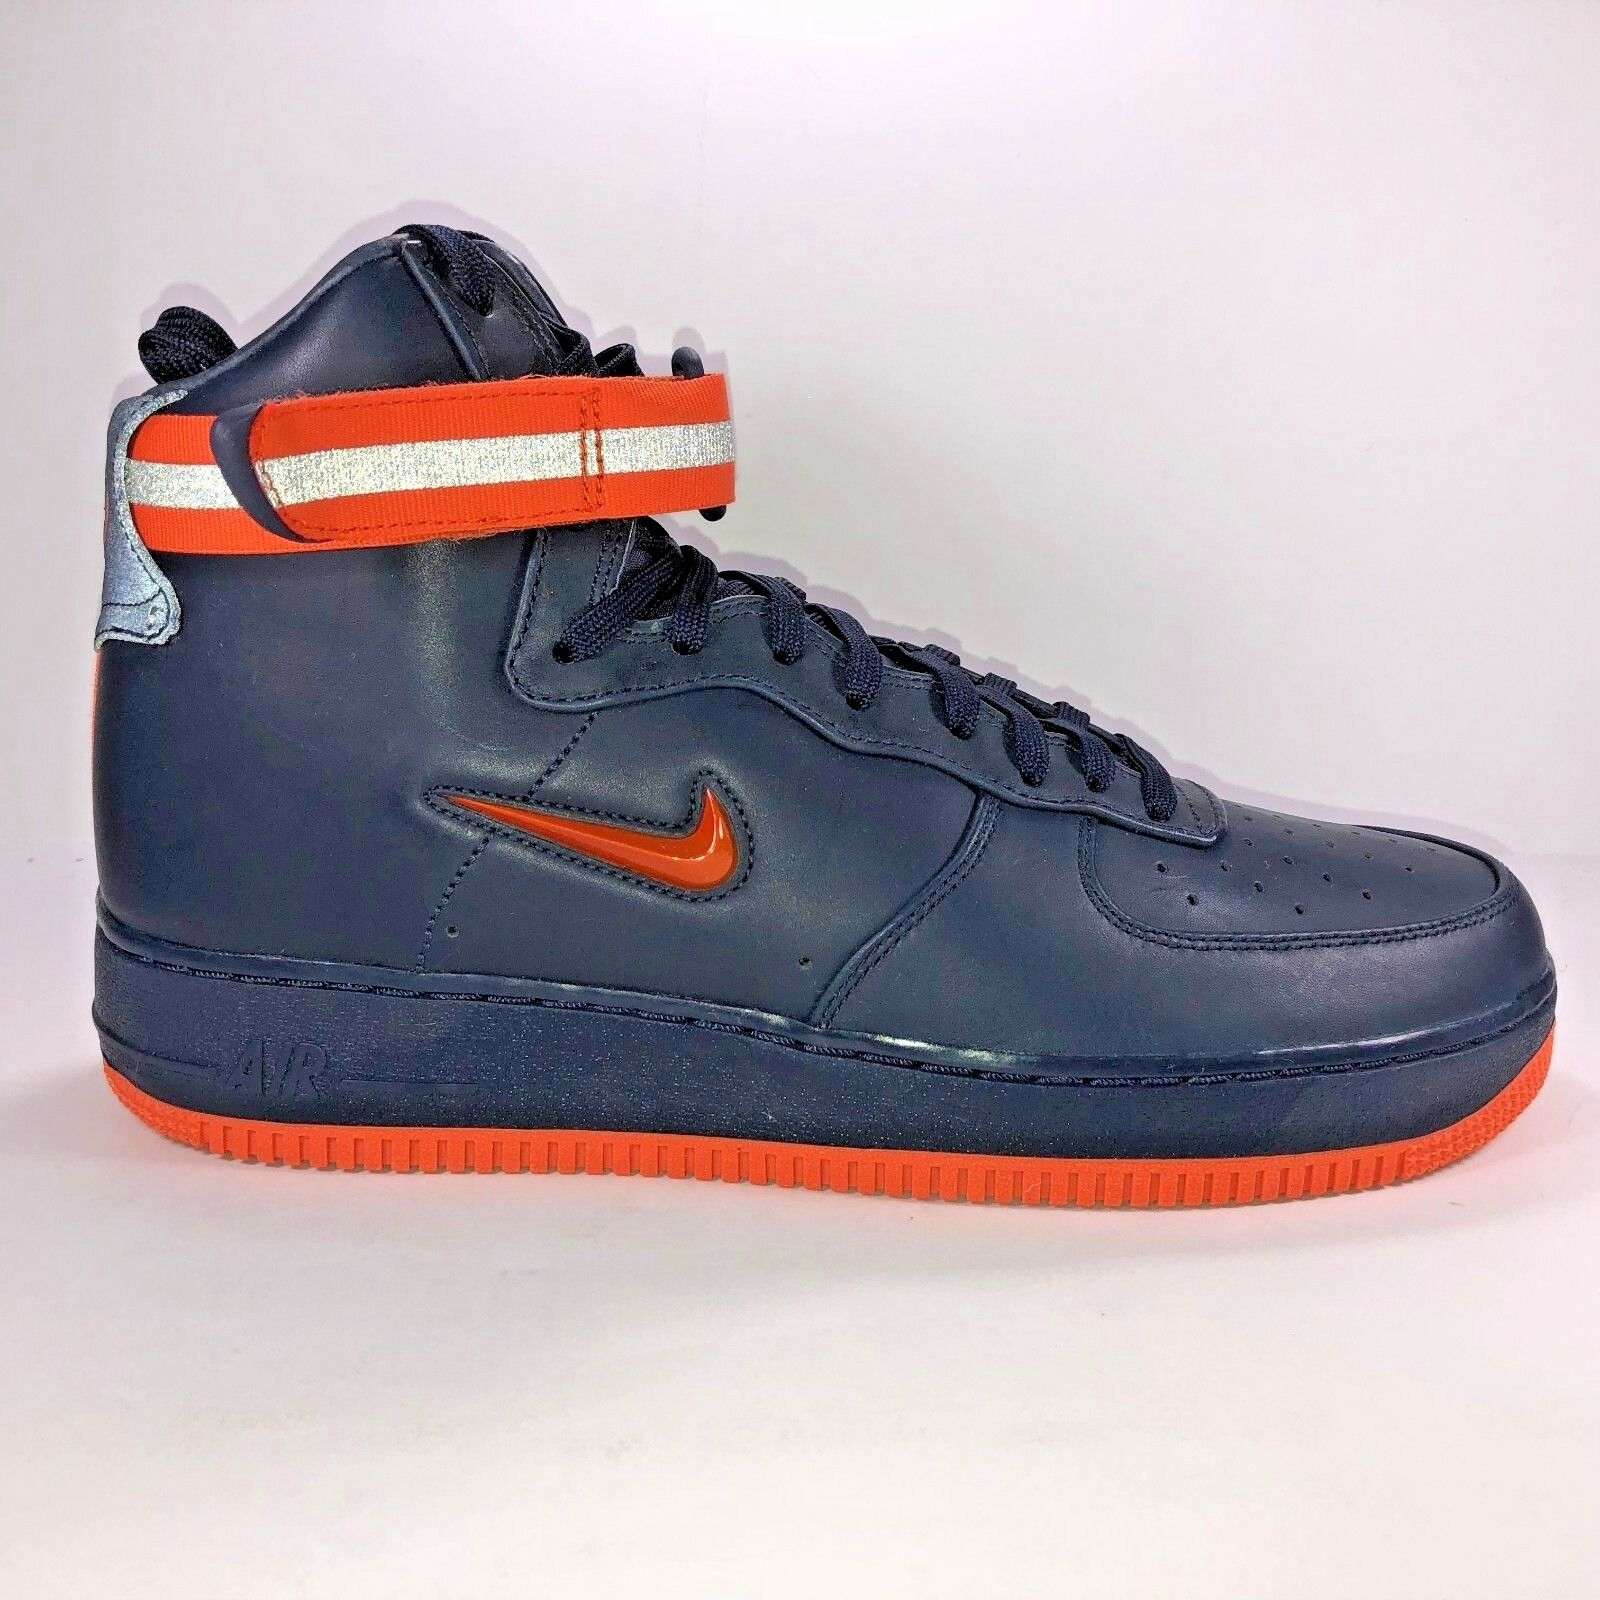 Nike Mens Size 12 Air Force 1 Retro FDNY Quick Strike Sneakers New AO1636-400